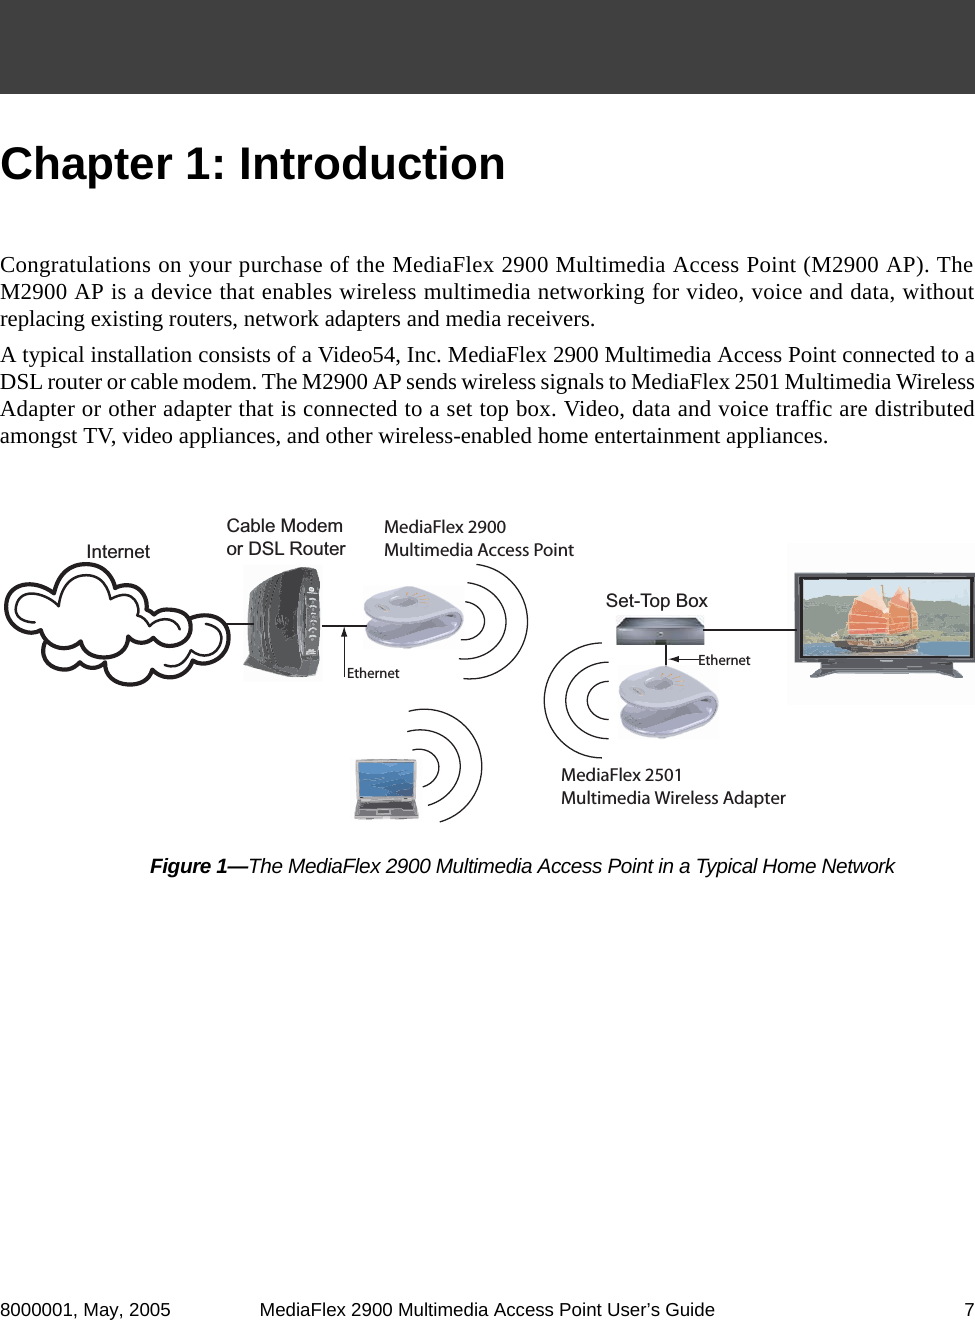 Ruckus Wireless Mf2900 Media Access Point 80211b G User Manual Typical Home Network Diagram 8000001 May 2005 Mediaflex 2900 Multimedia Users Guide 7chapter 1 Introduction